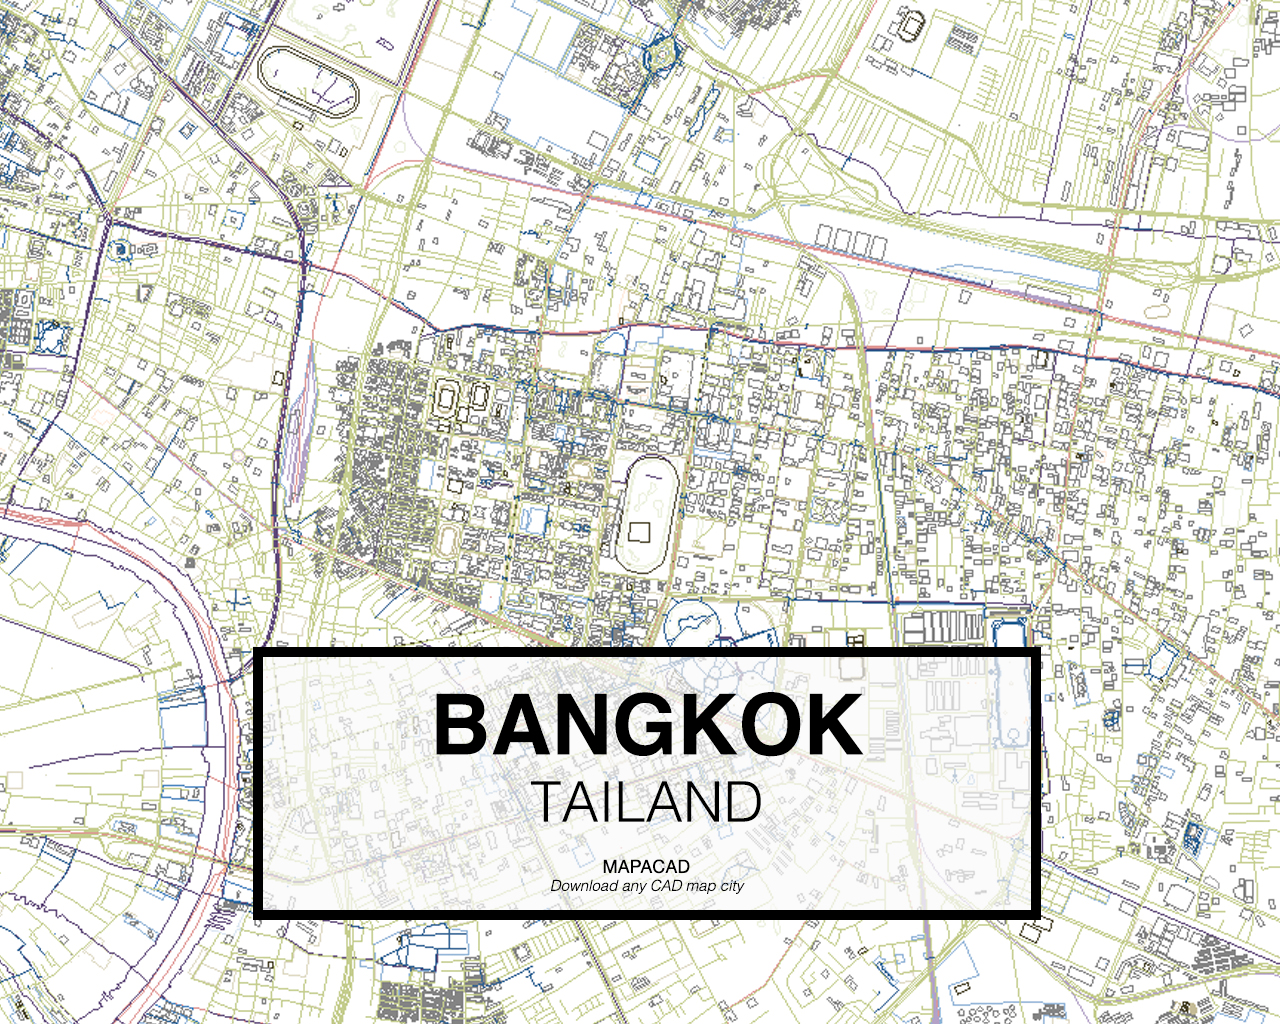 Bangkok Dwg Maps Free Download on sun free download, dxf free download, svg free download, c4d free download, free templates to download, jpeg free download, rhino free download,